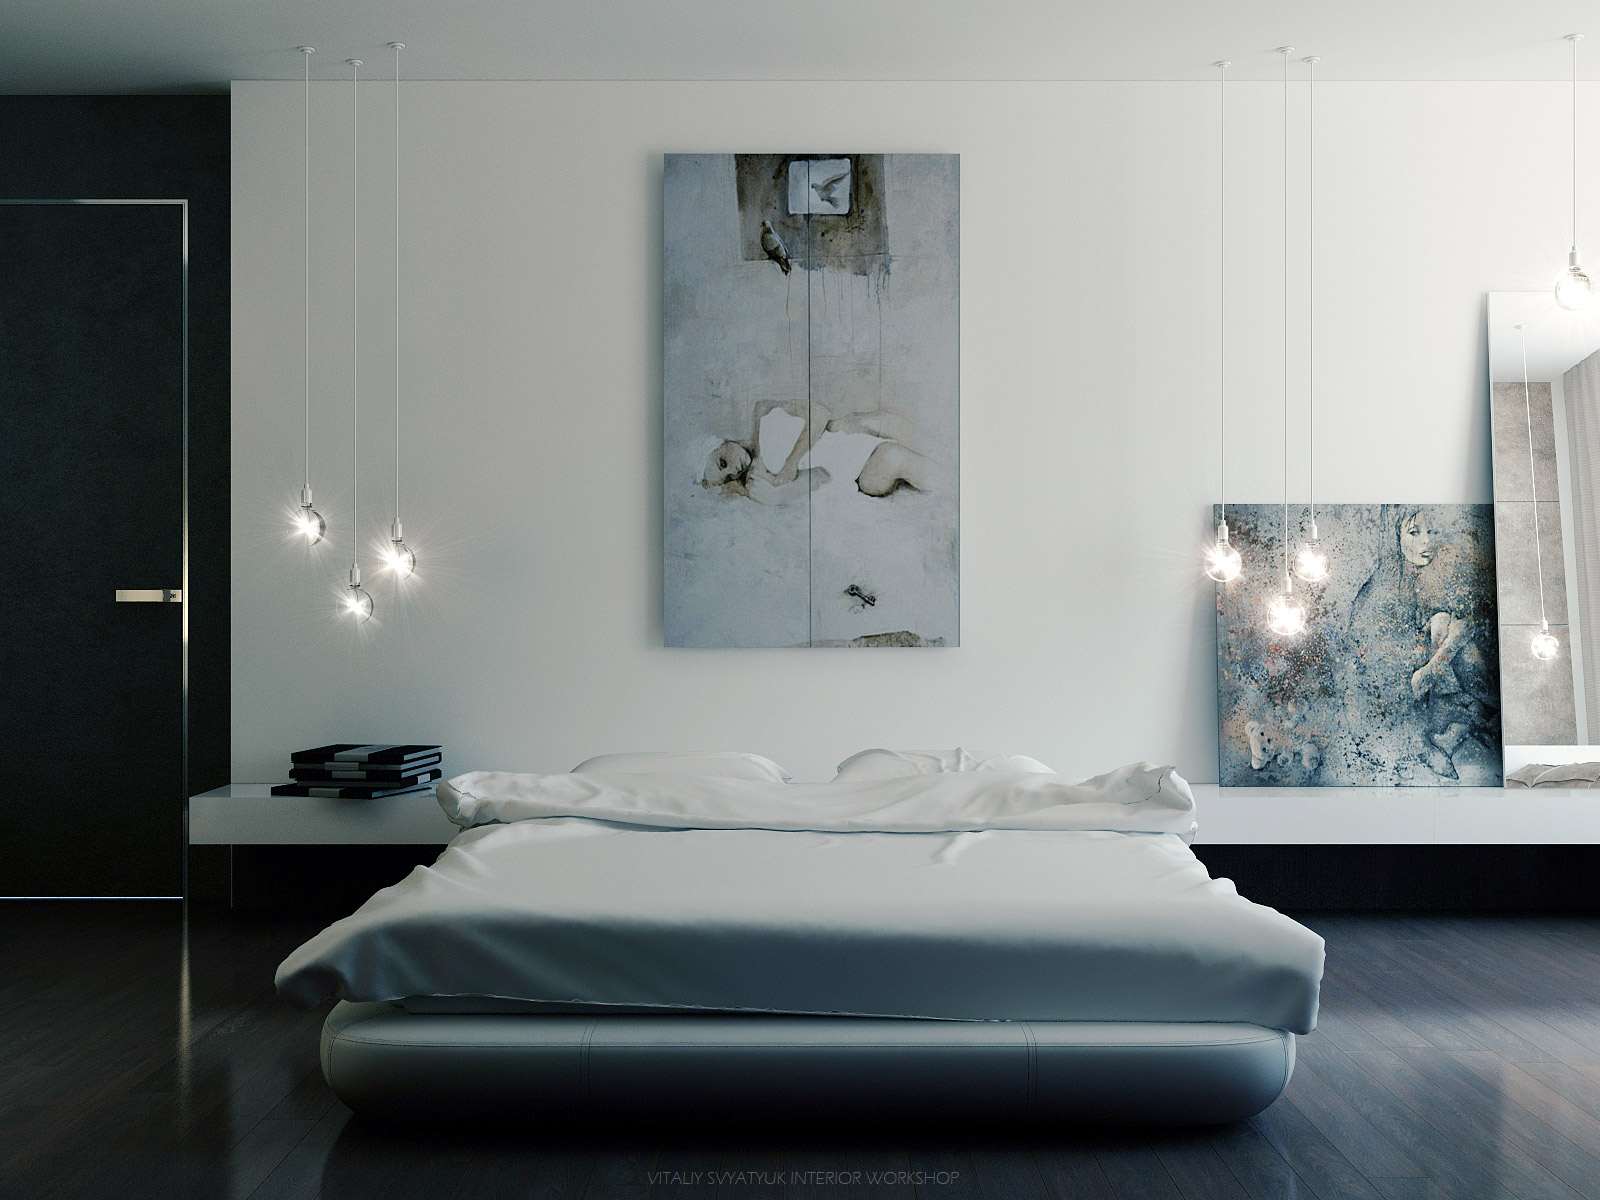 Modern art vitaly svyatyuk cool art cool pallete bedroom for Bedroom wall art